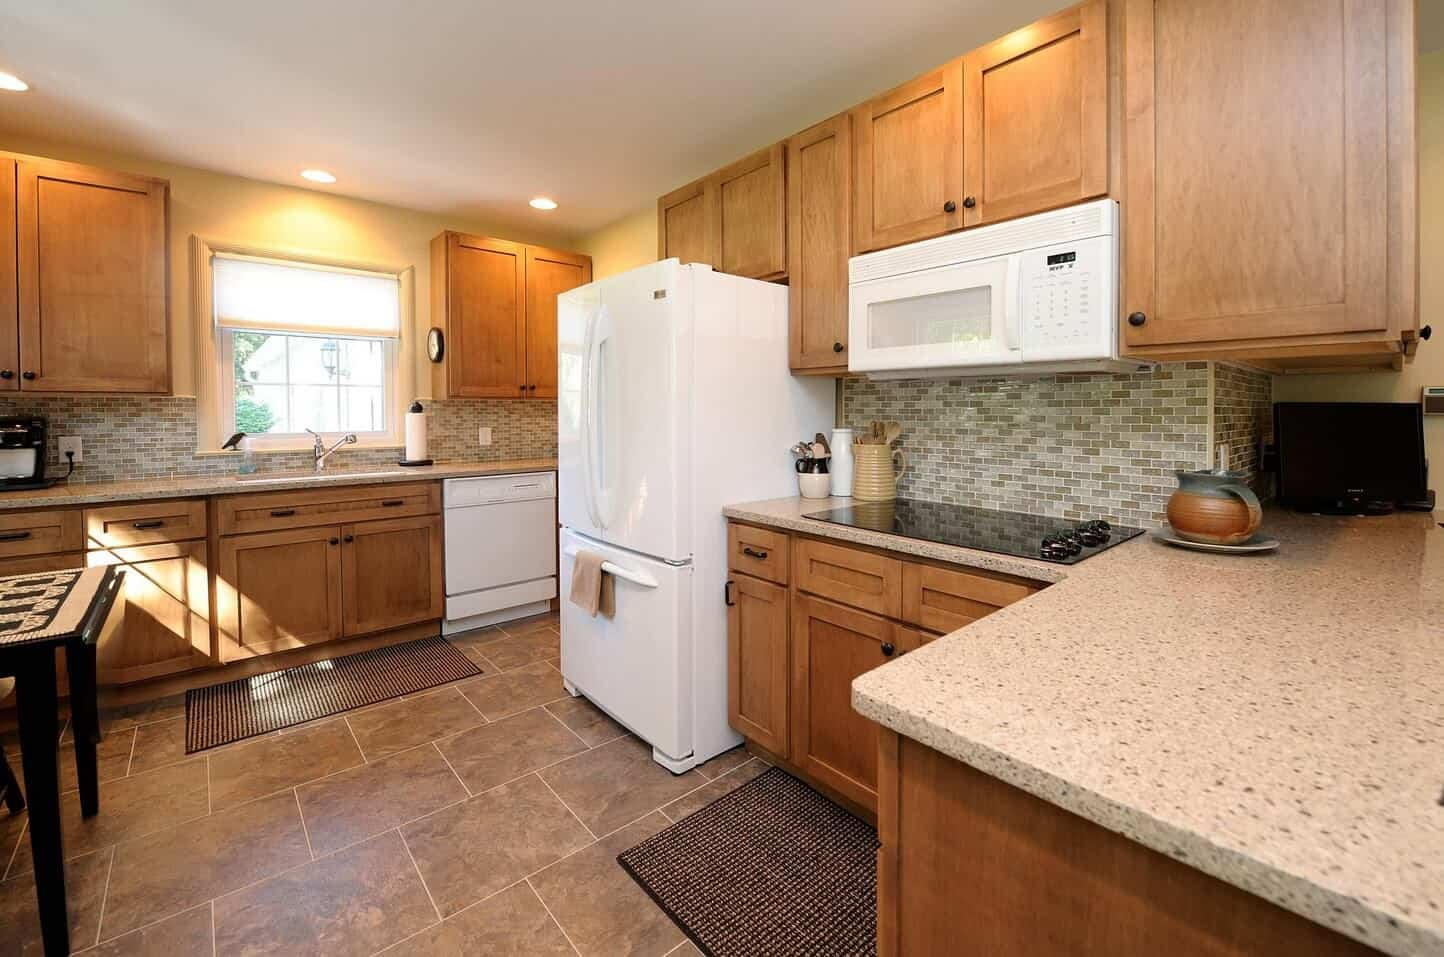 Warm kitchen with white fridge and microwave suspended over the induction cooktop mounted on the granite countertop. It is surrounded with wooden cabinetry and stylish mosaic backsplash tiles.